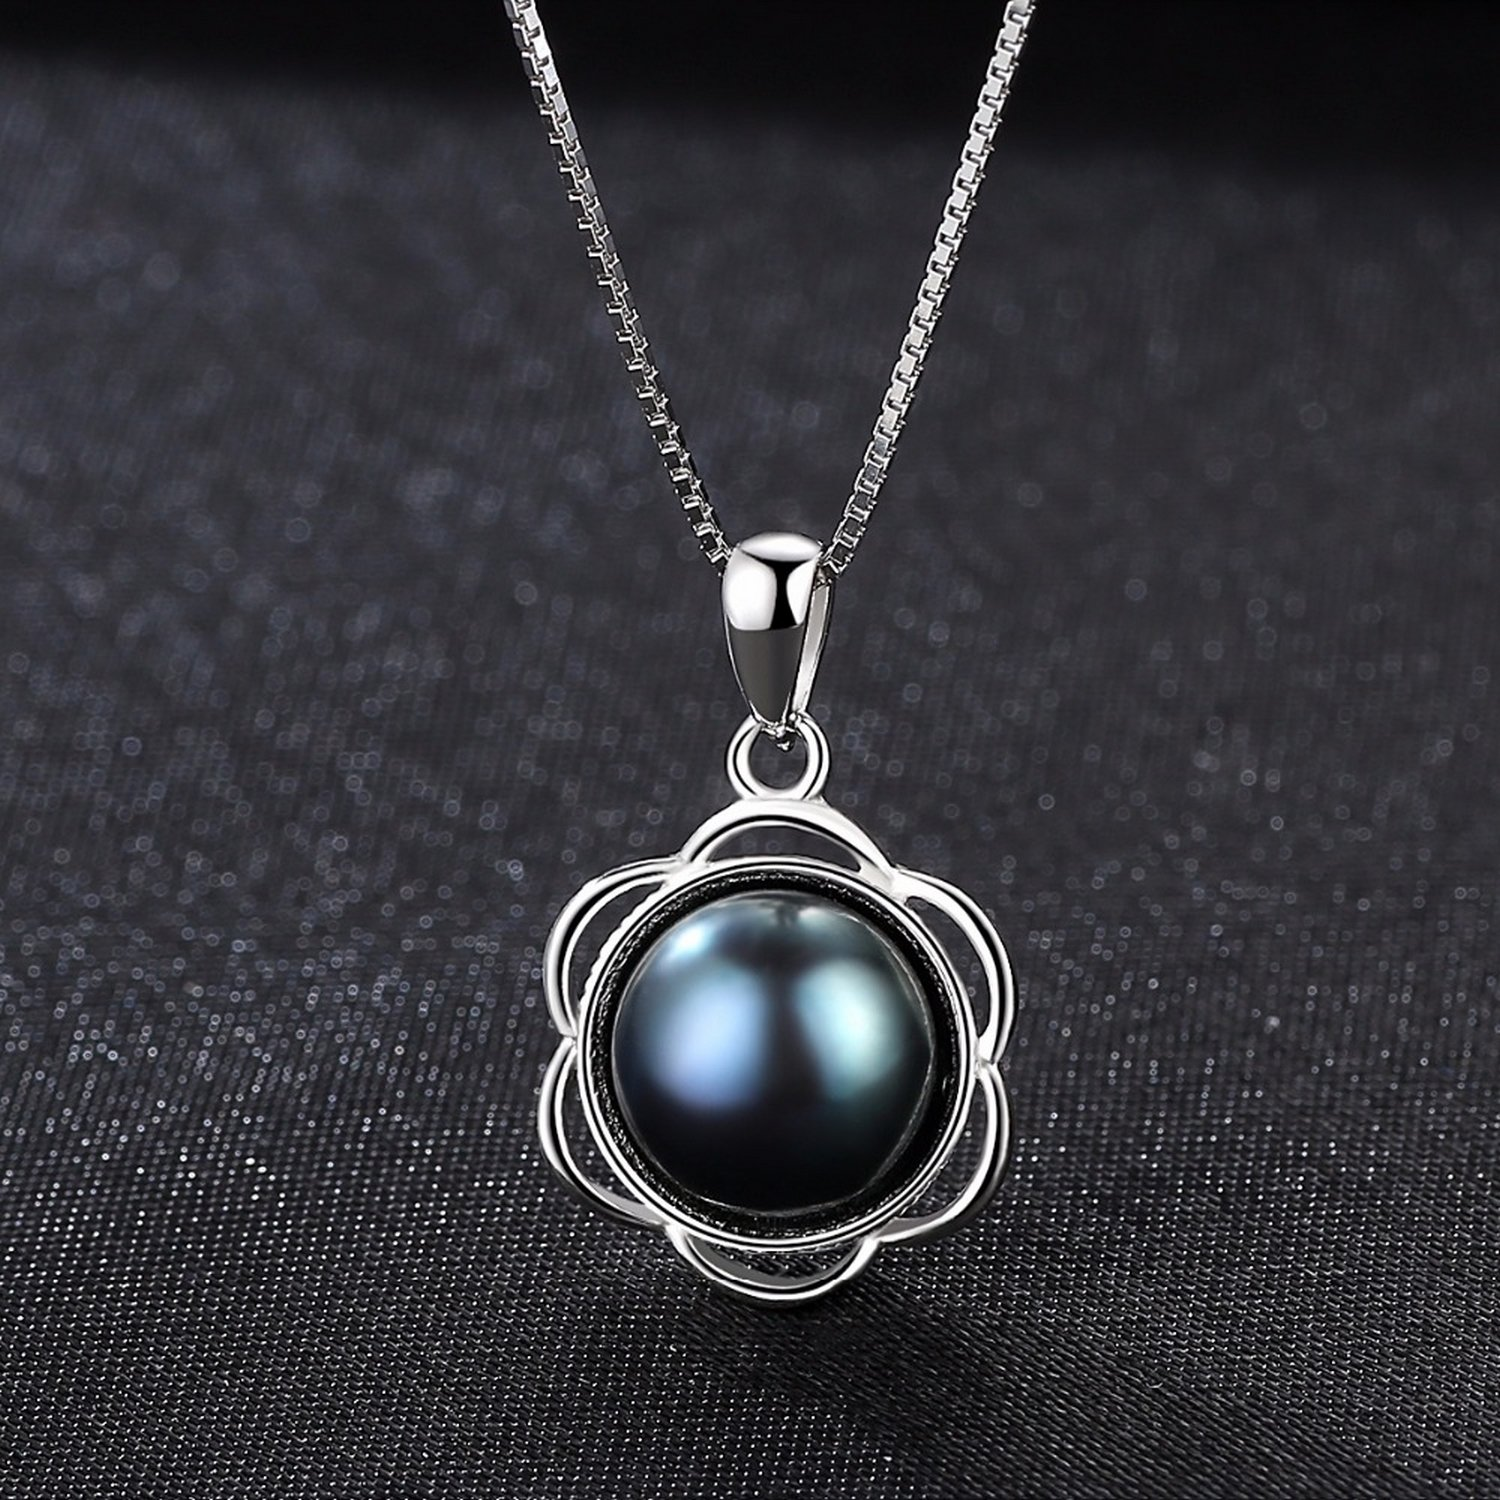 CS-DB Jewelry Silver Black Color Pearl Chain Charm Pendants Necklaces